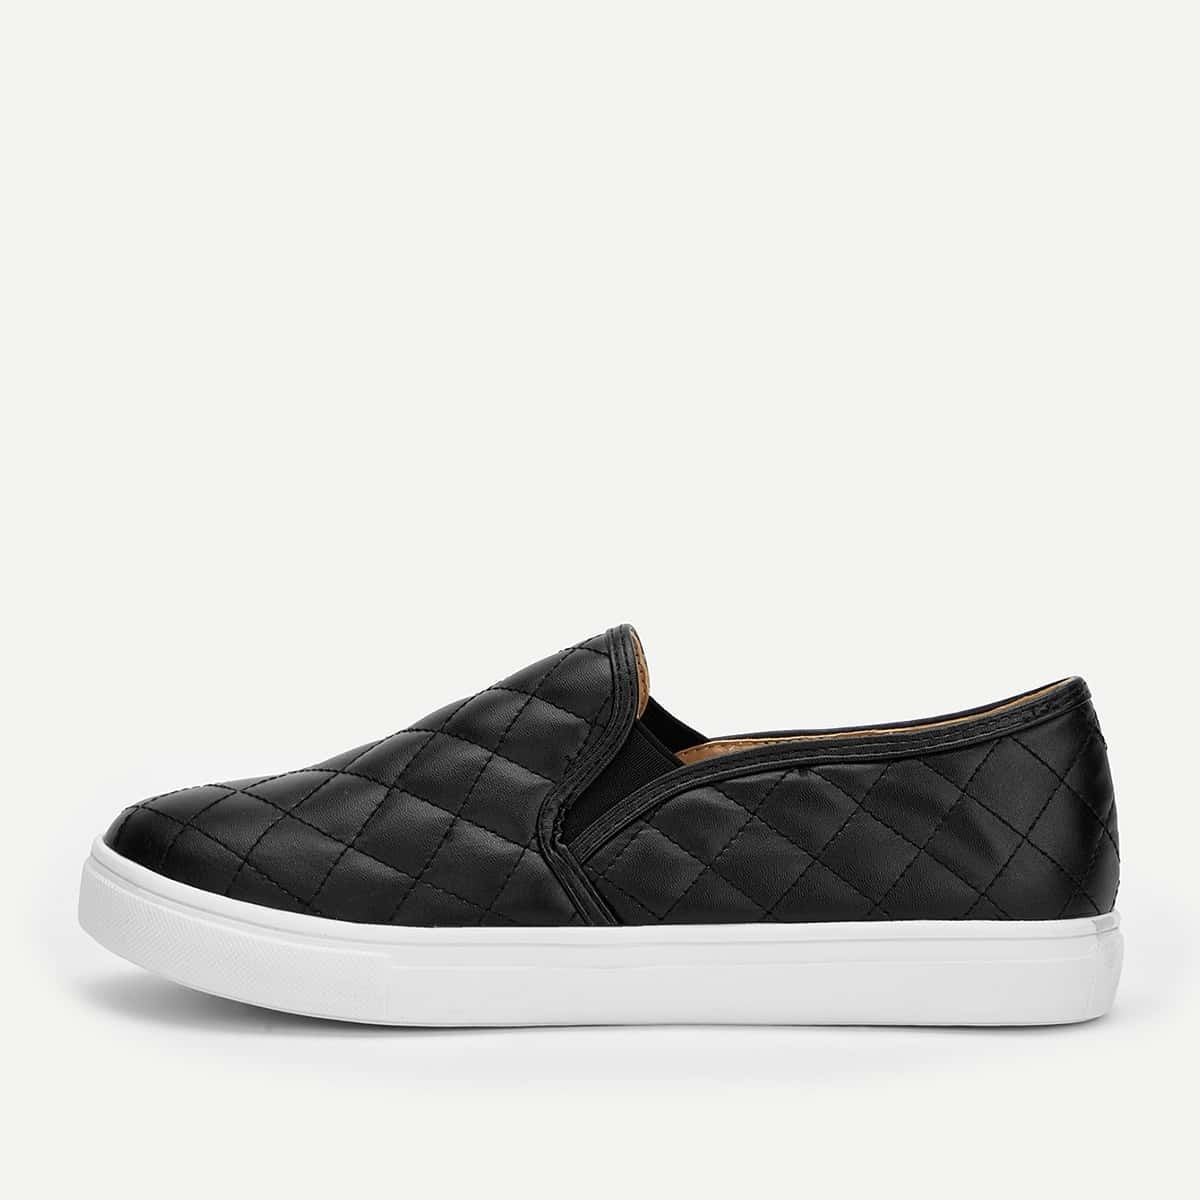 SHEIN coupon: Quilted Design Slip On Sneakers